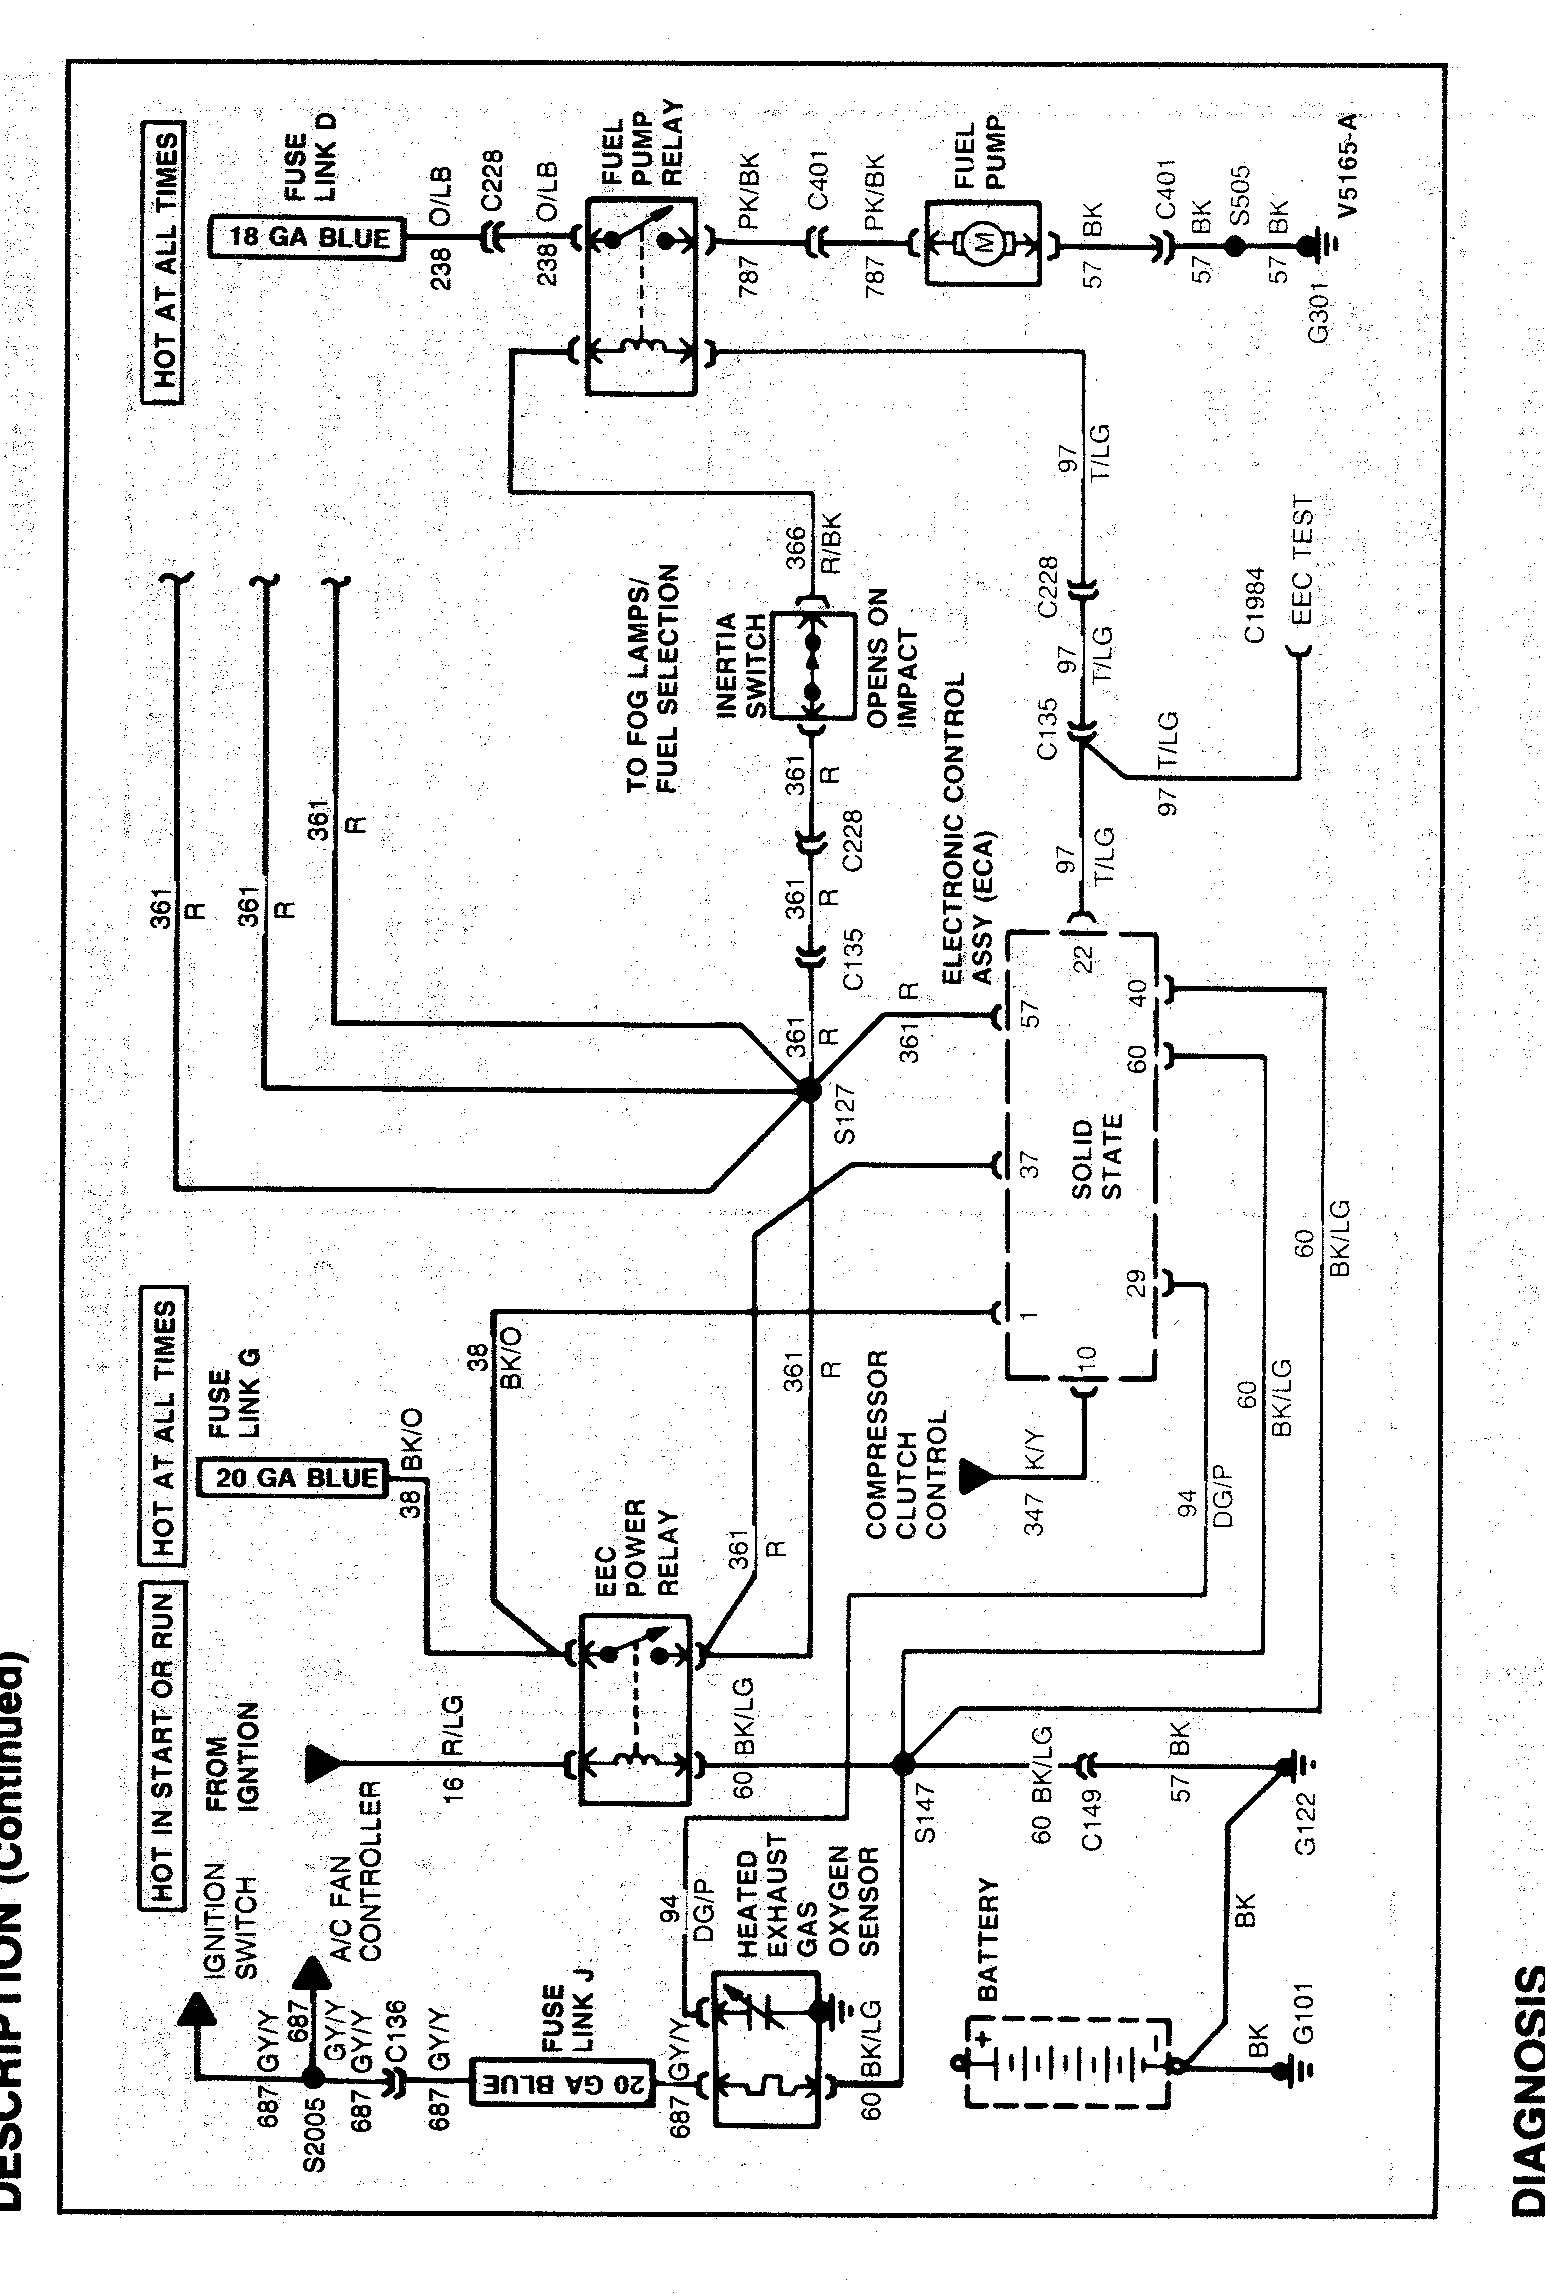 1951d1051749150 need help fuel pump switch mustangfuelelectricaldiagram2 98 s10 fuel pump wiring diagram chevrolet s10 wiring diagram 1996 Chevy S10 Wiring Diagram at highcare.asia